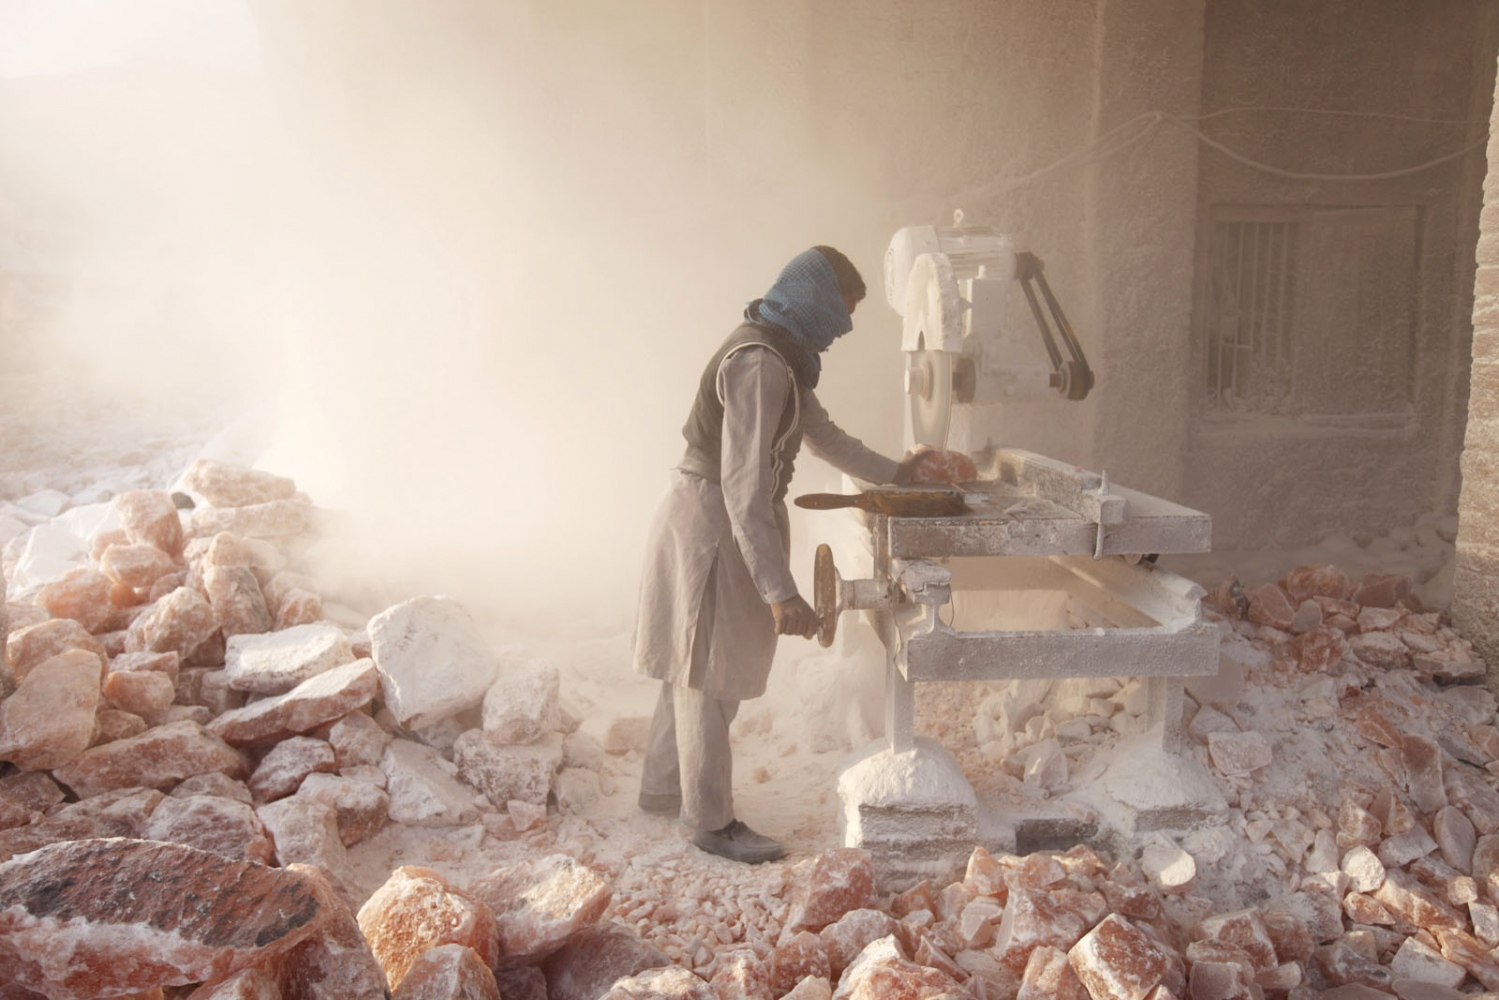 A salt cutting workshop uses a mechanised saw to cut up the salt in to blocks sending salt dust in to the air. Local people also carve the beautiful pink rock salt in household objects ranging from ashtrays to lamps which are then send and sold at tourist shops. Punjab, Pakistan.